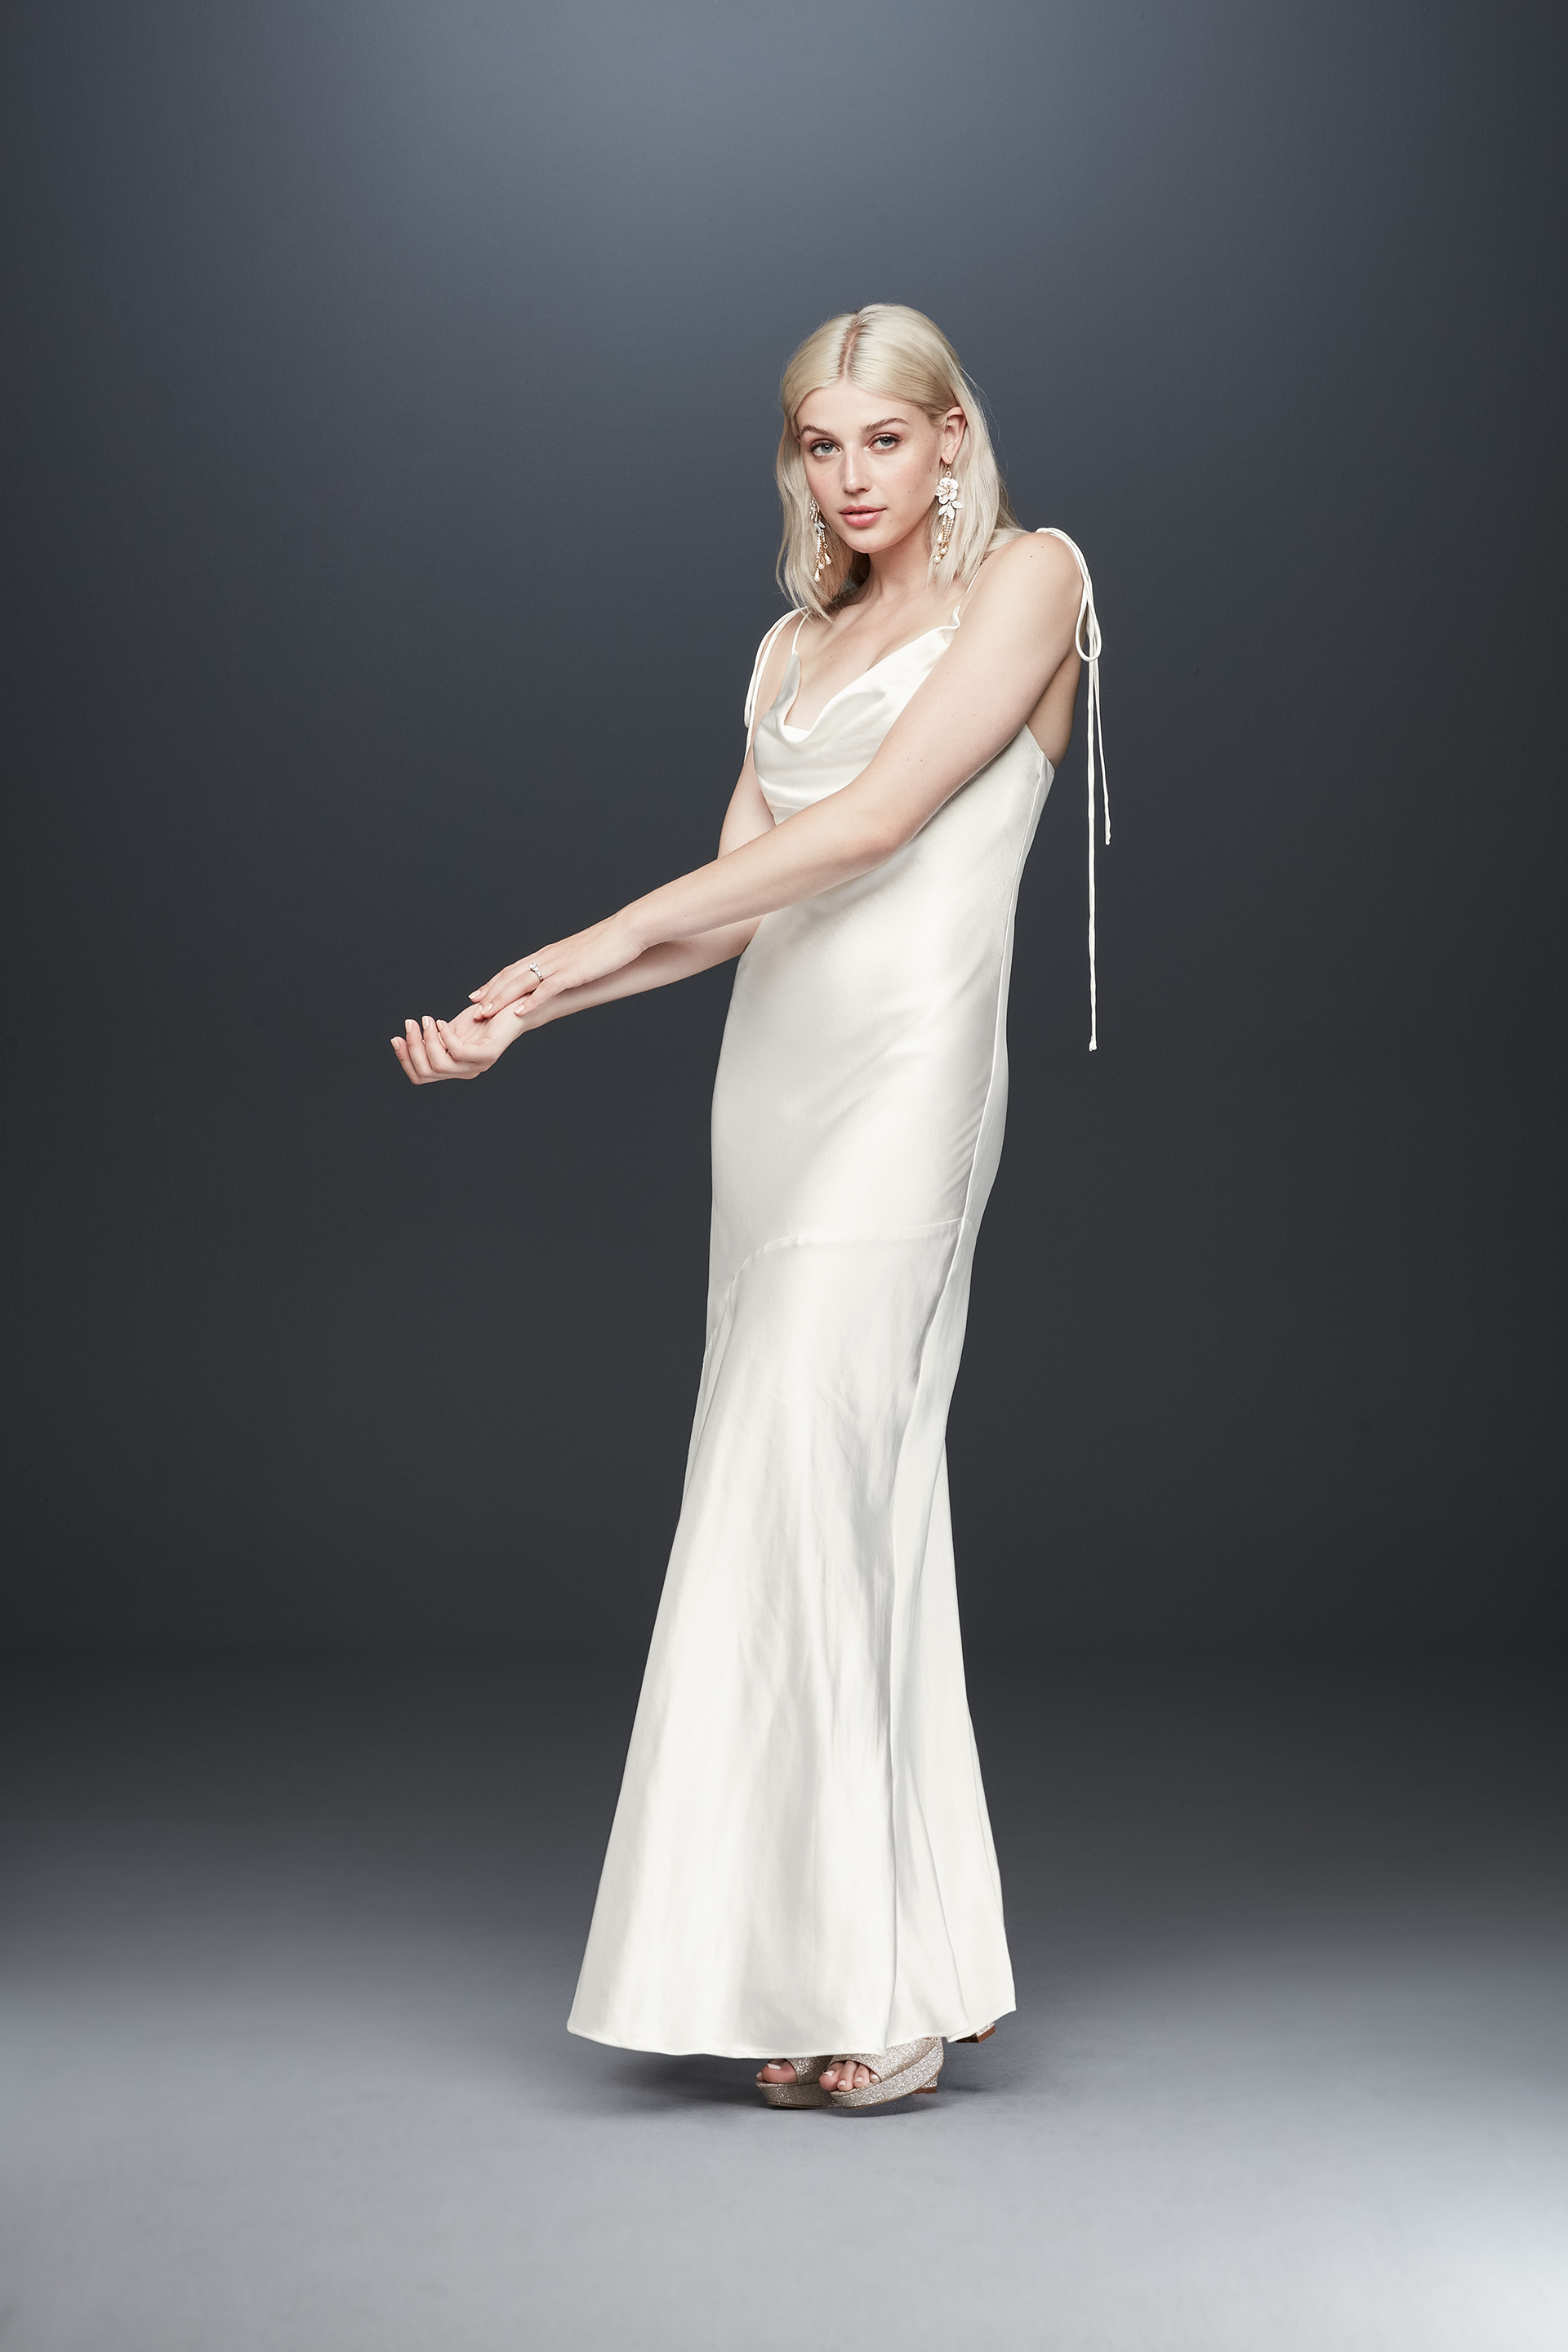 Bride in cowl neck long satin wedding dress from Fame & Partners x David's Bridal collection